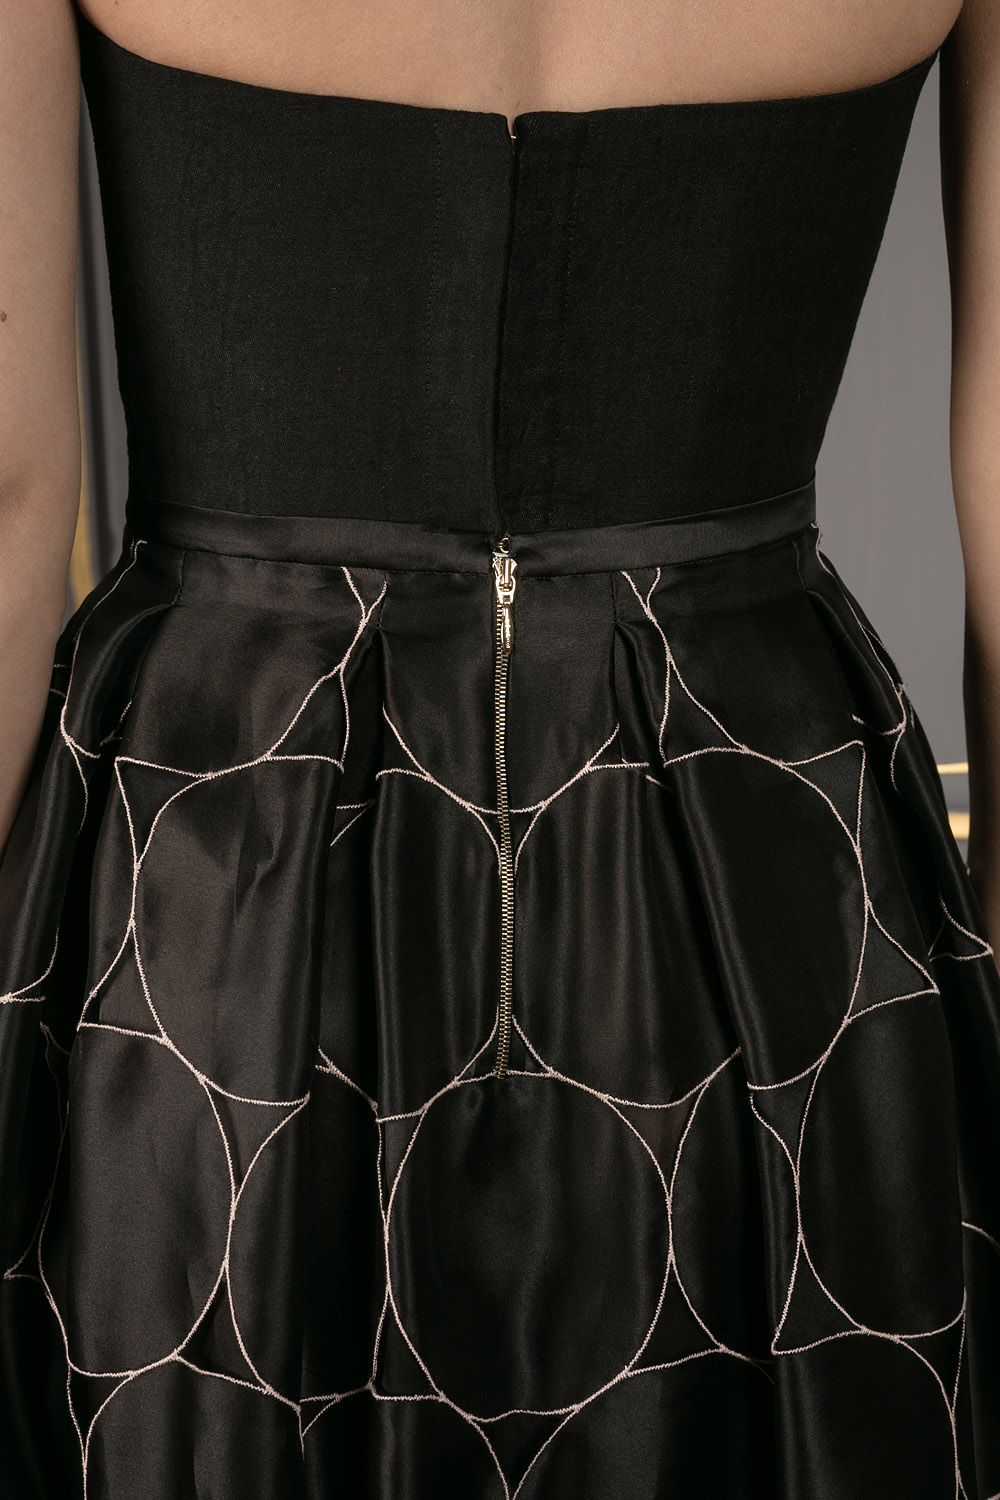 A-line skirt with circle detailing throughout